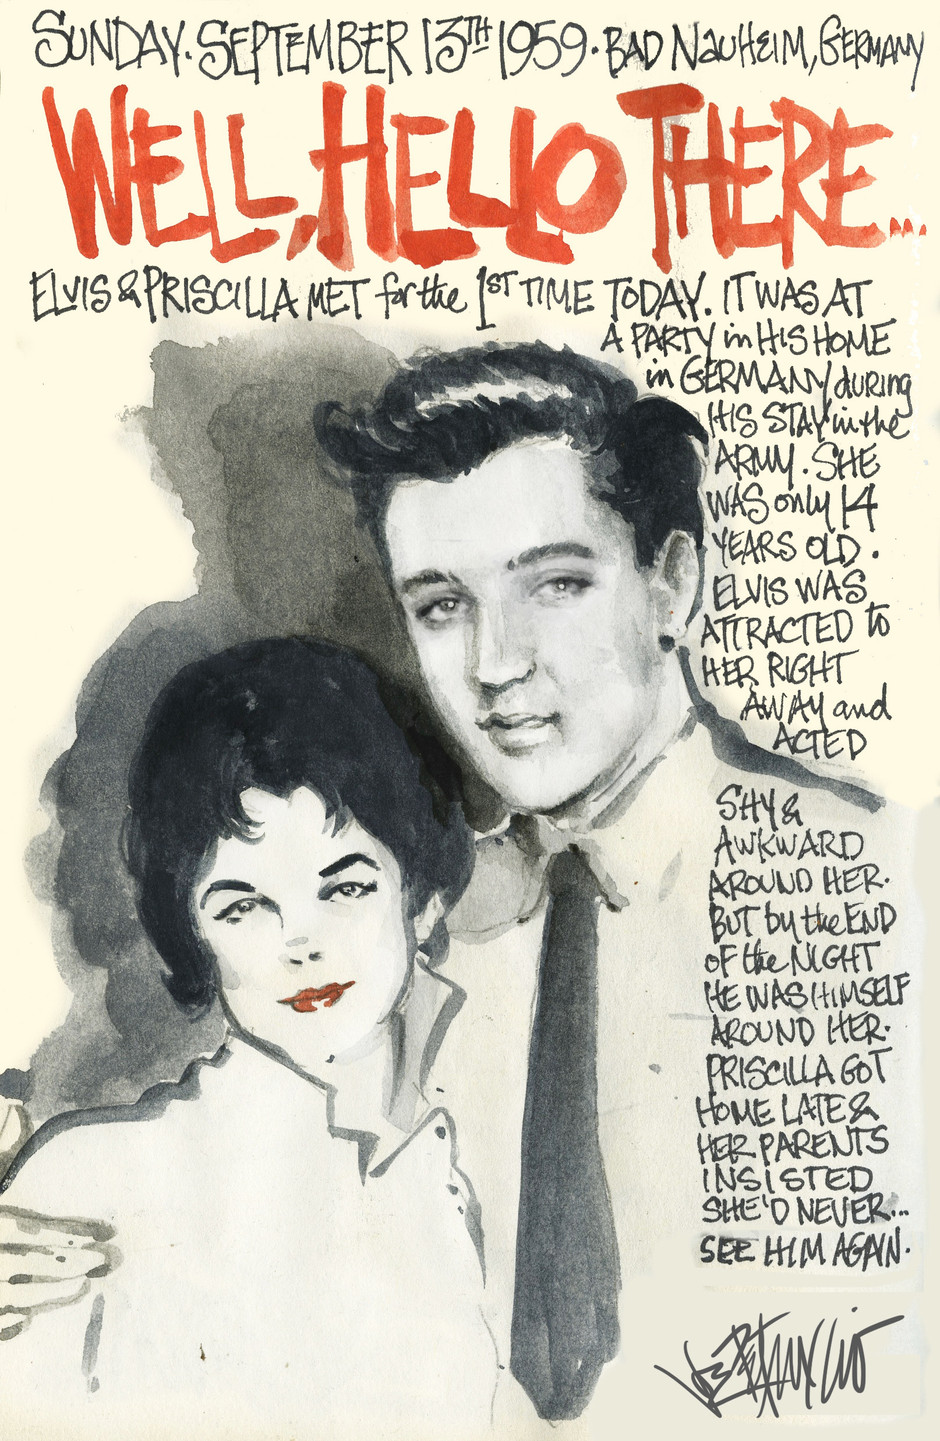 THIS DAY IN ELVIS HISTORY... WELL, HELLO THERE